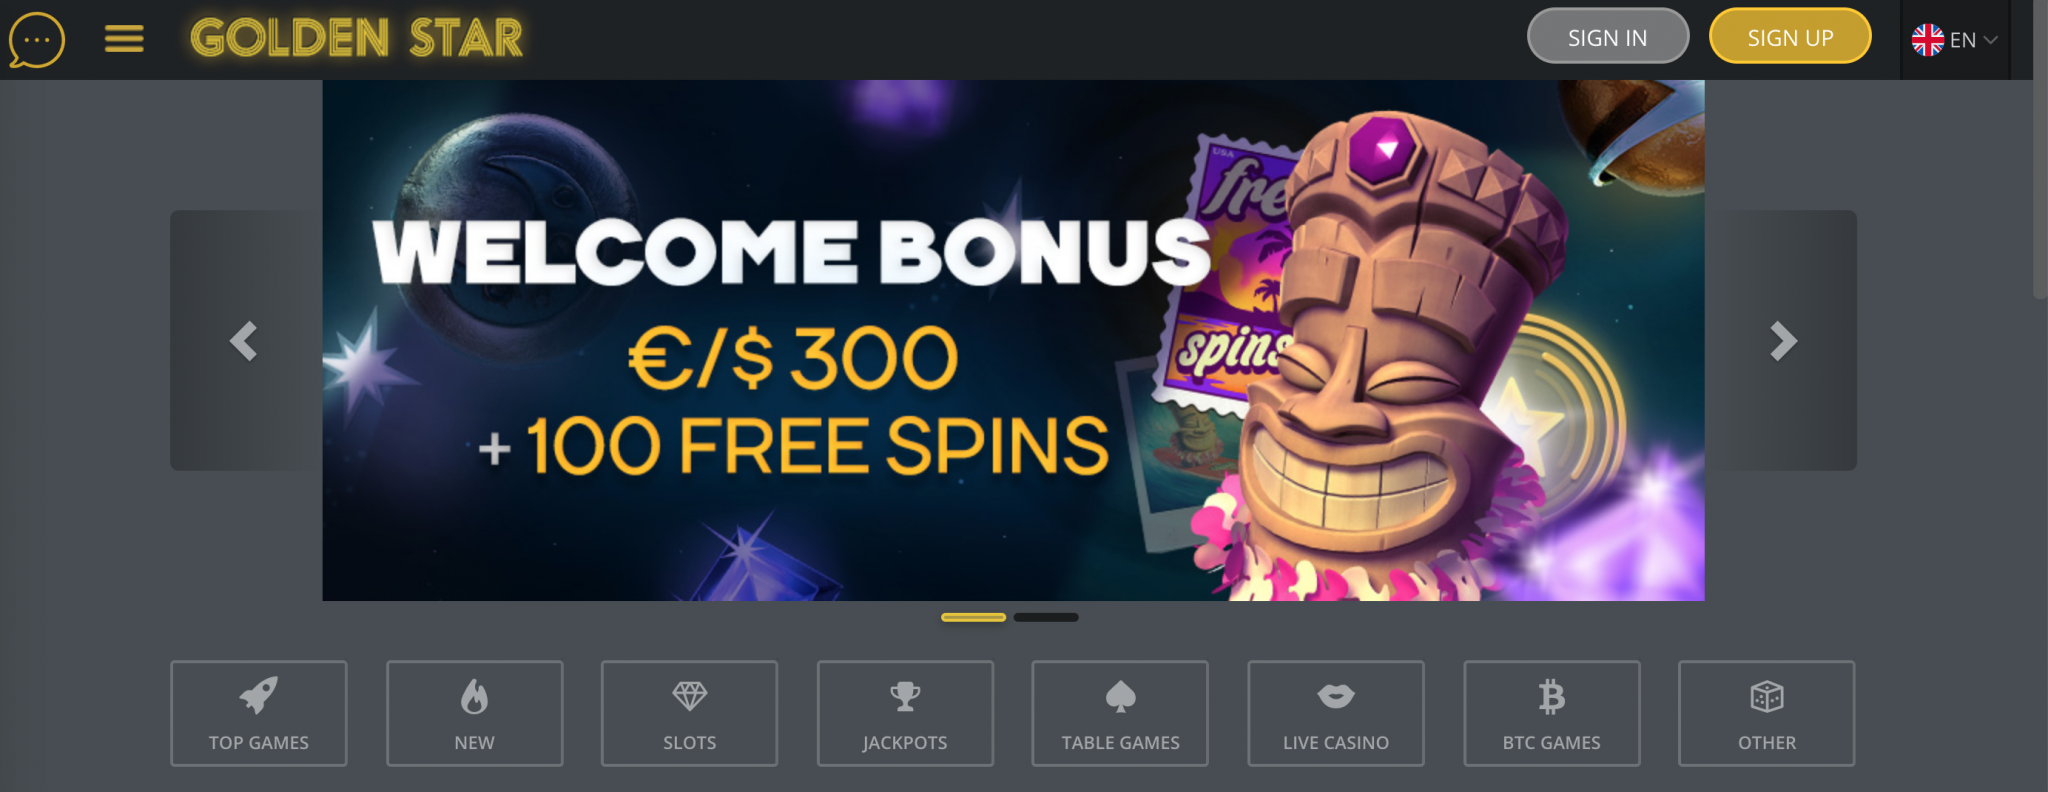 Golden Star Casino Welcome Bonus